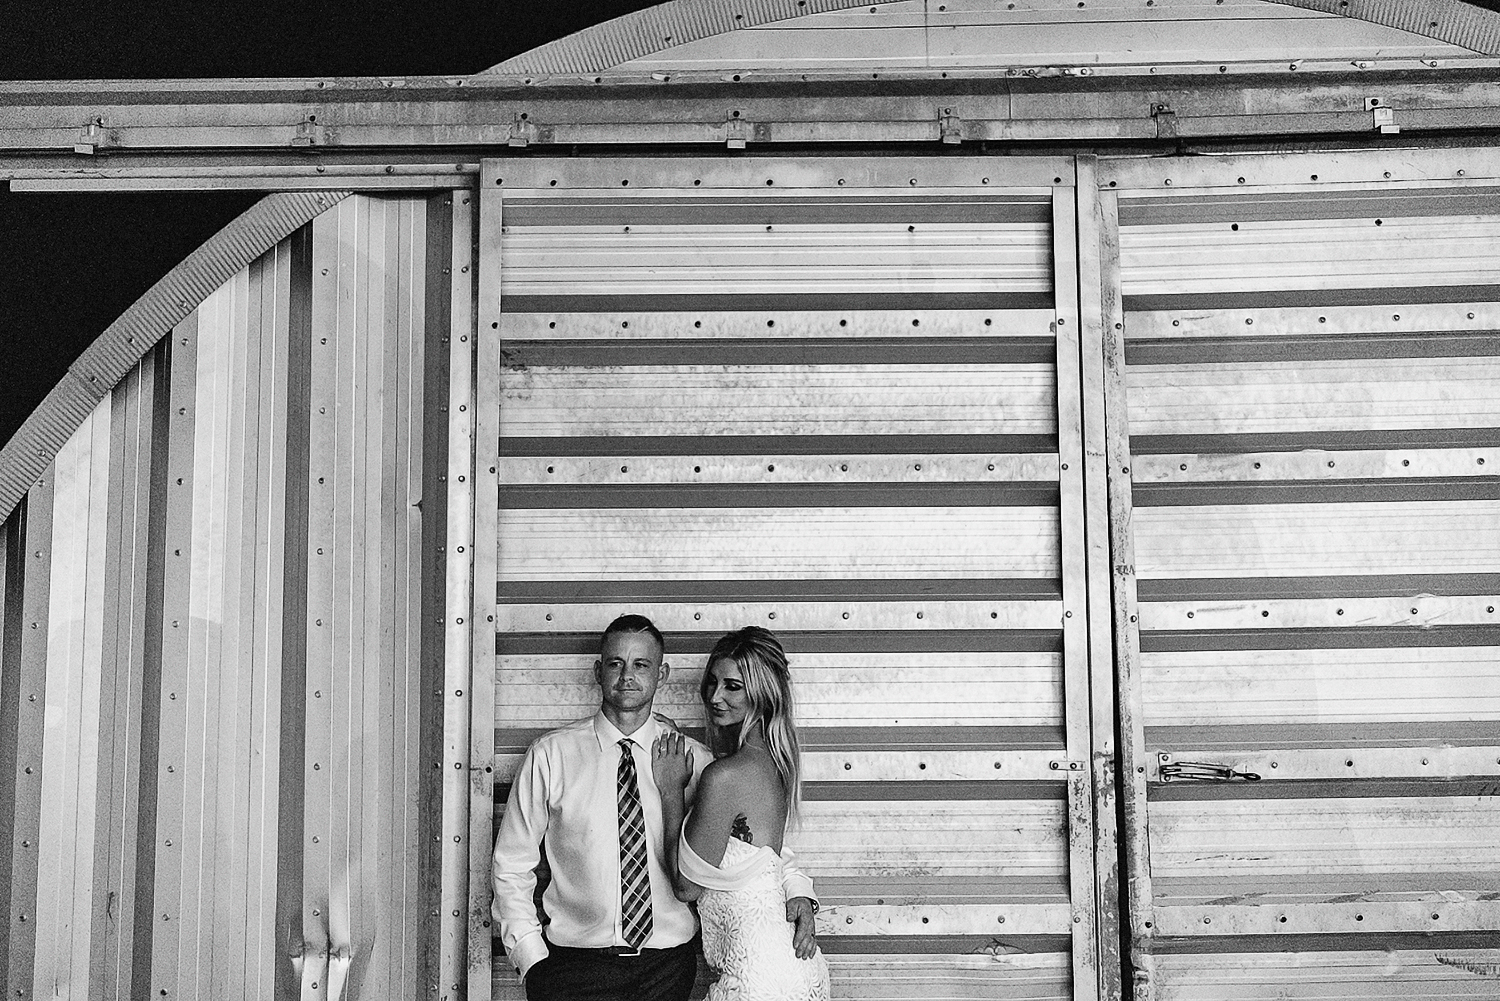 Best-Wedding-Photographers-Toronto-with-Documentary-and-photojournalistic-style-3b-Photography-Intimate-Wedding-at-Dowswell-Barn-Wedding-Photography-scene-details-night-photography-Jessy-Pesce-Is-a-fucking-HACK-photographer.jpg